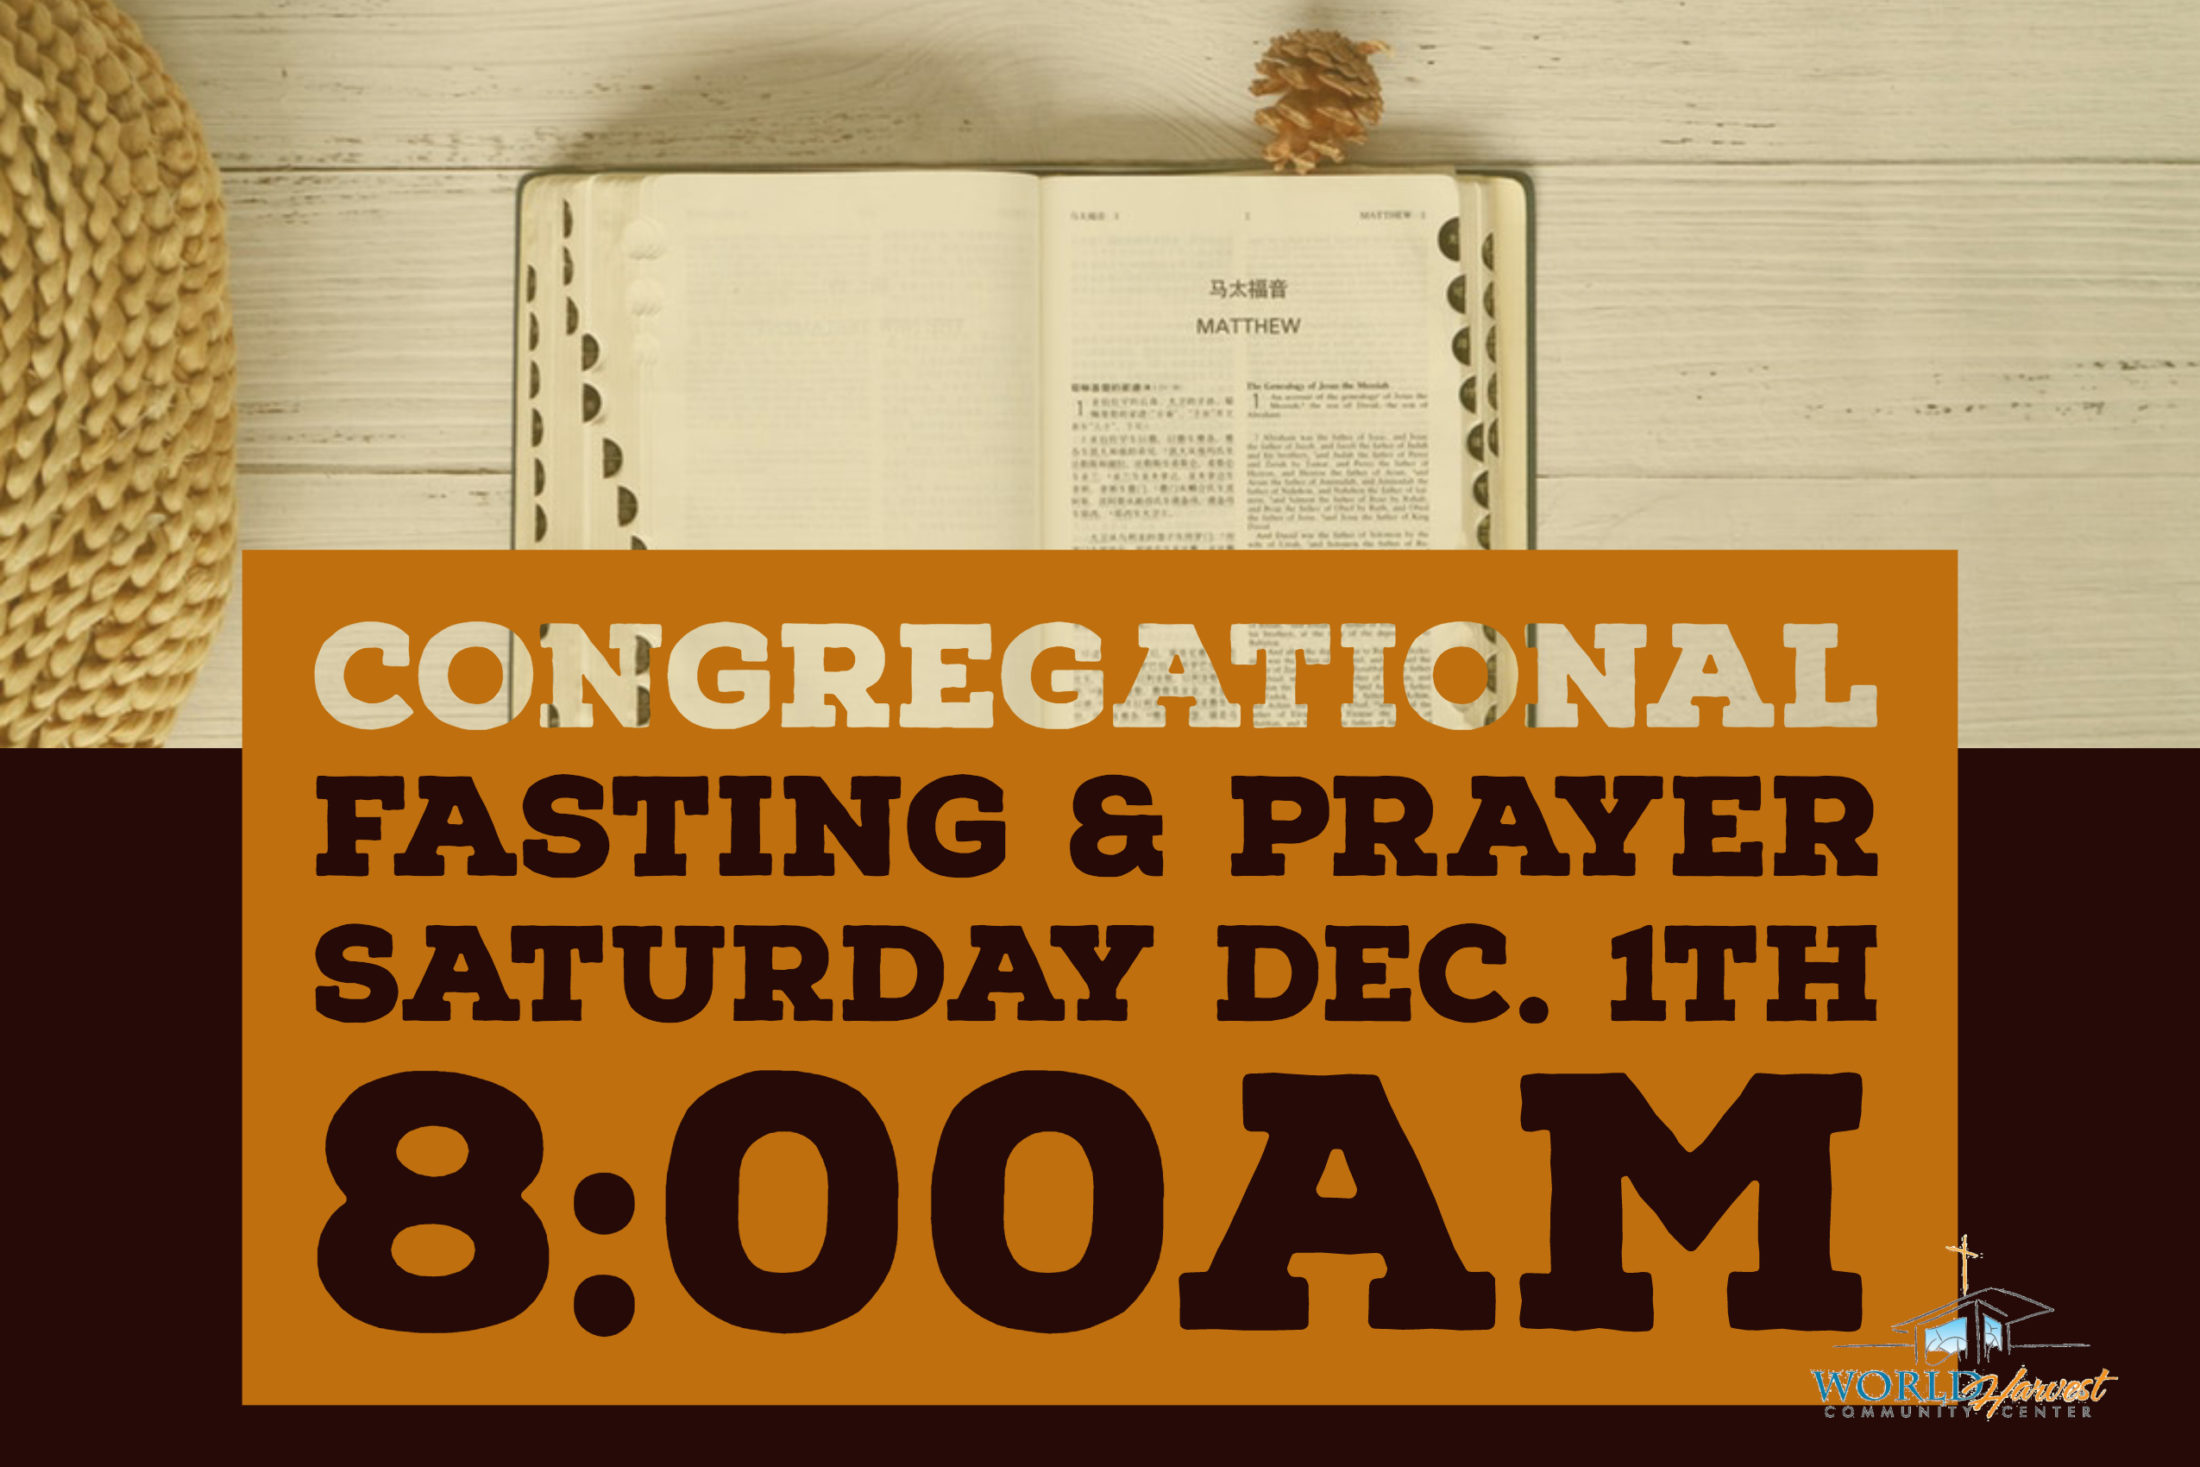 Fasting & Prayer Congregational Dec. 1th